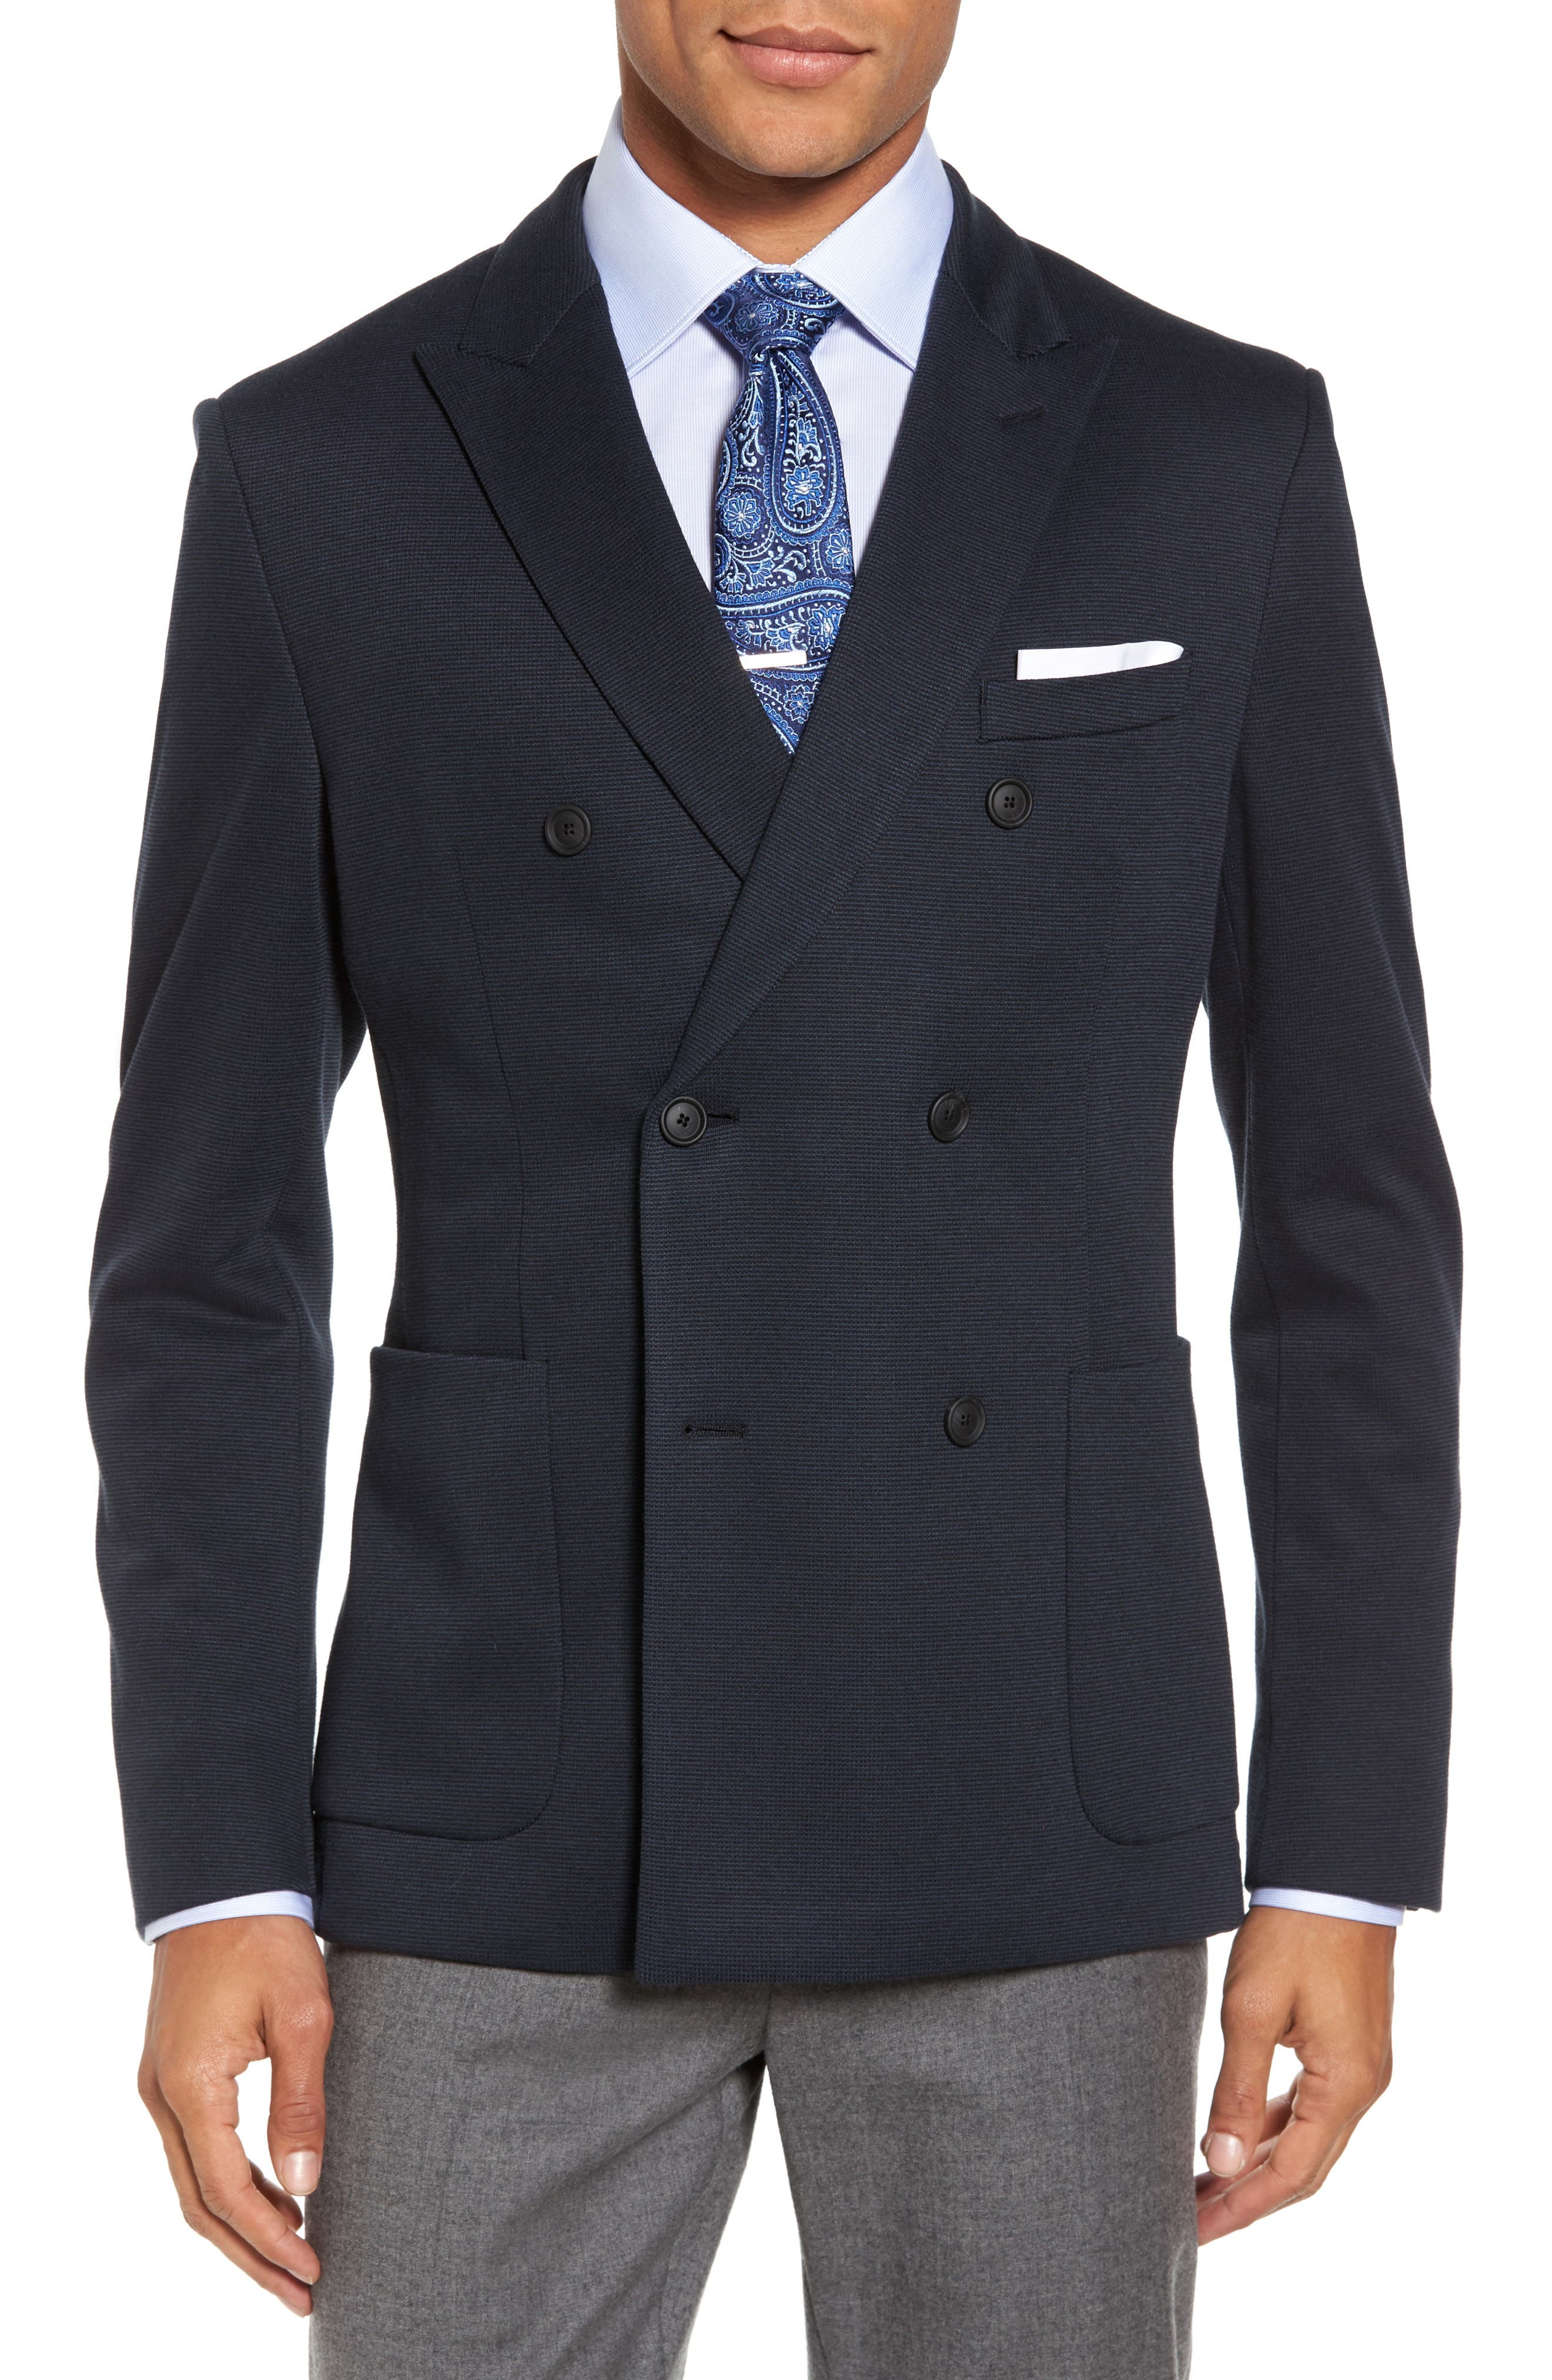 Main Image - BOSS Nayler-J Trim Fit Double-Breasted Blazer